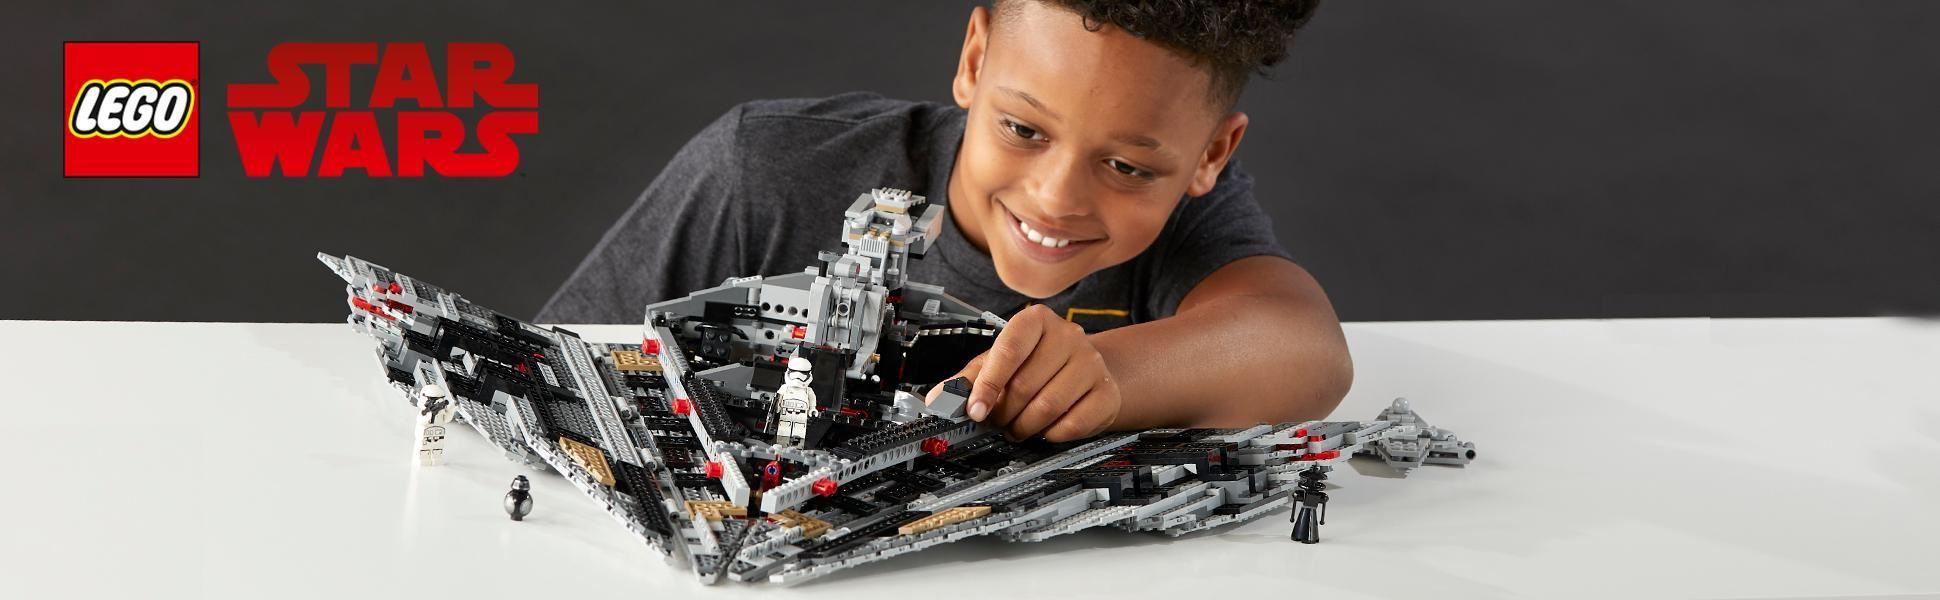 Lego star wars 75190 first order star destroyer amazon - Lego star wars 1 2 3 4 5 6 ...